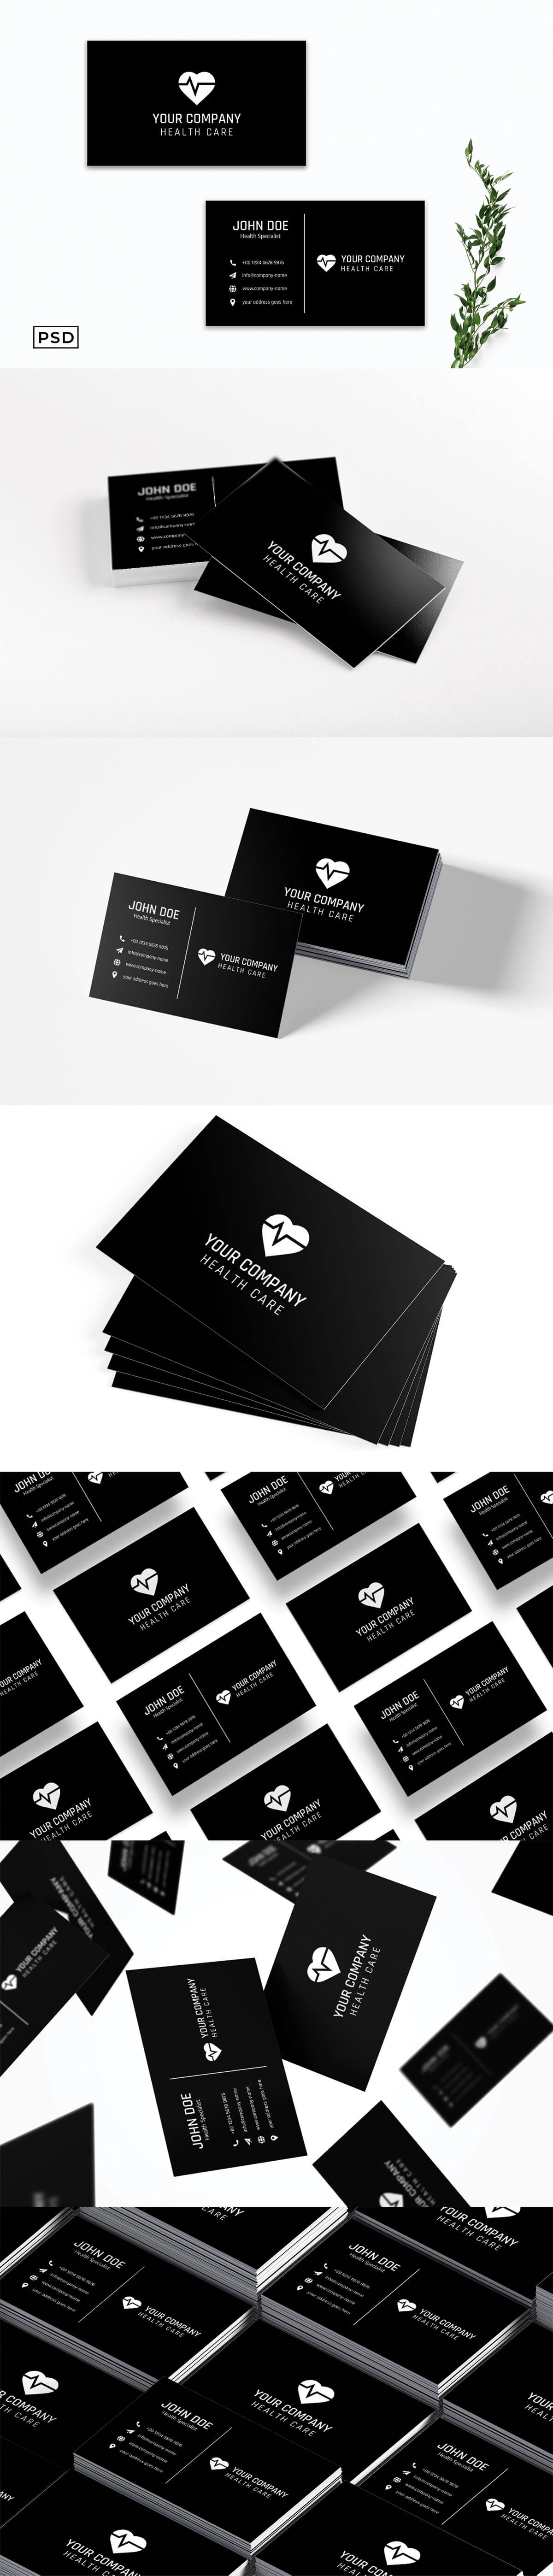 Free Minimal Business Card Template V5